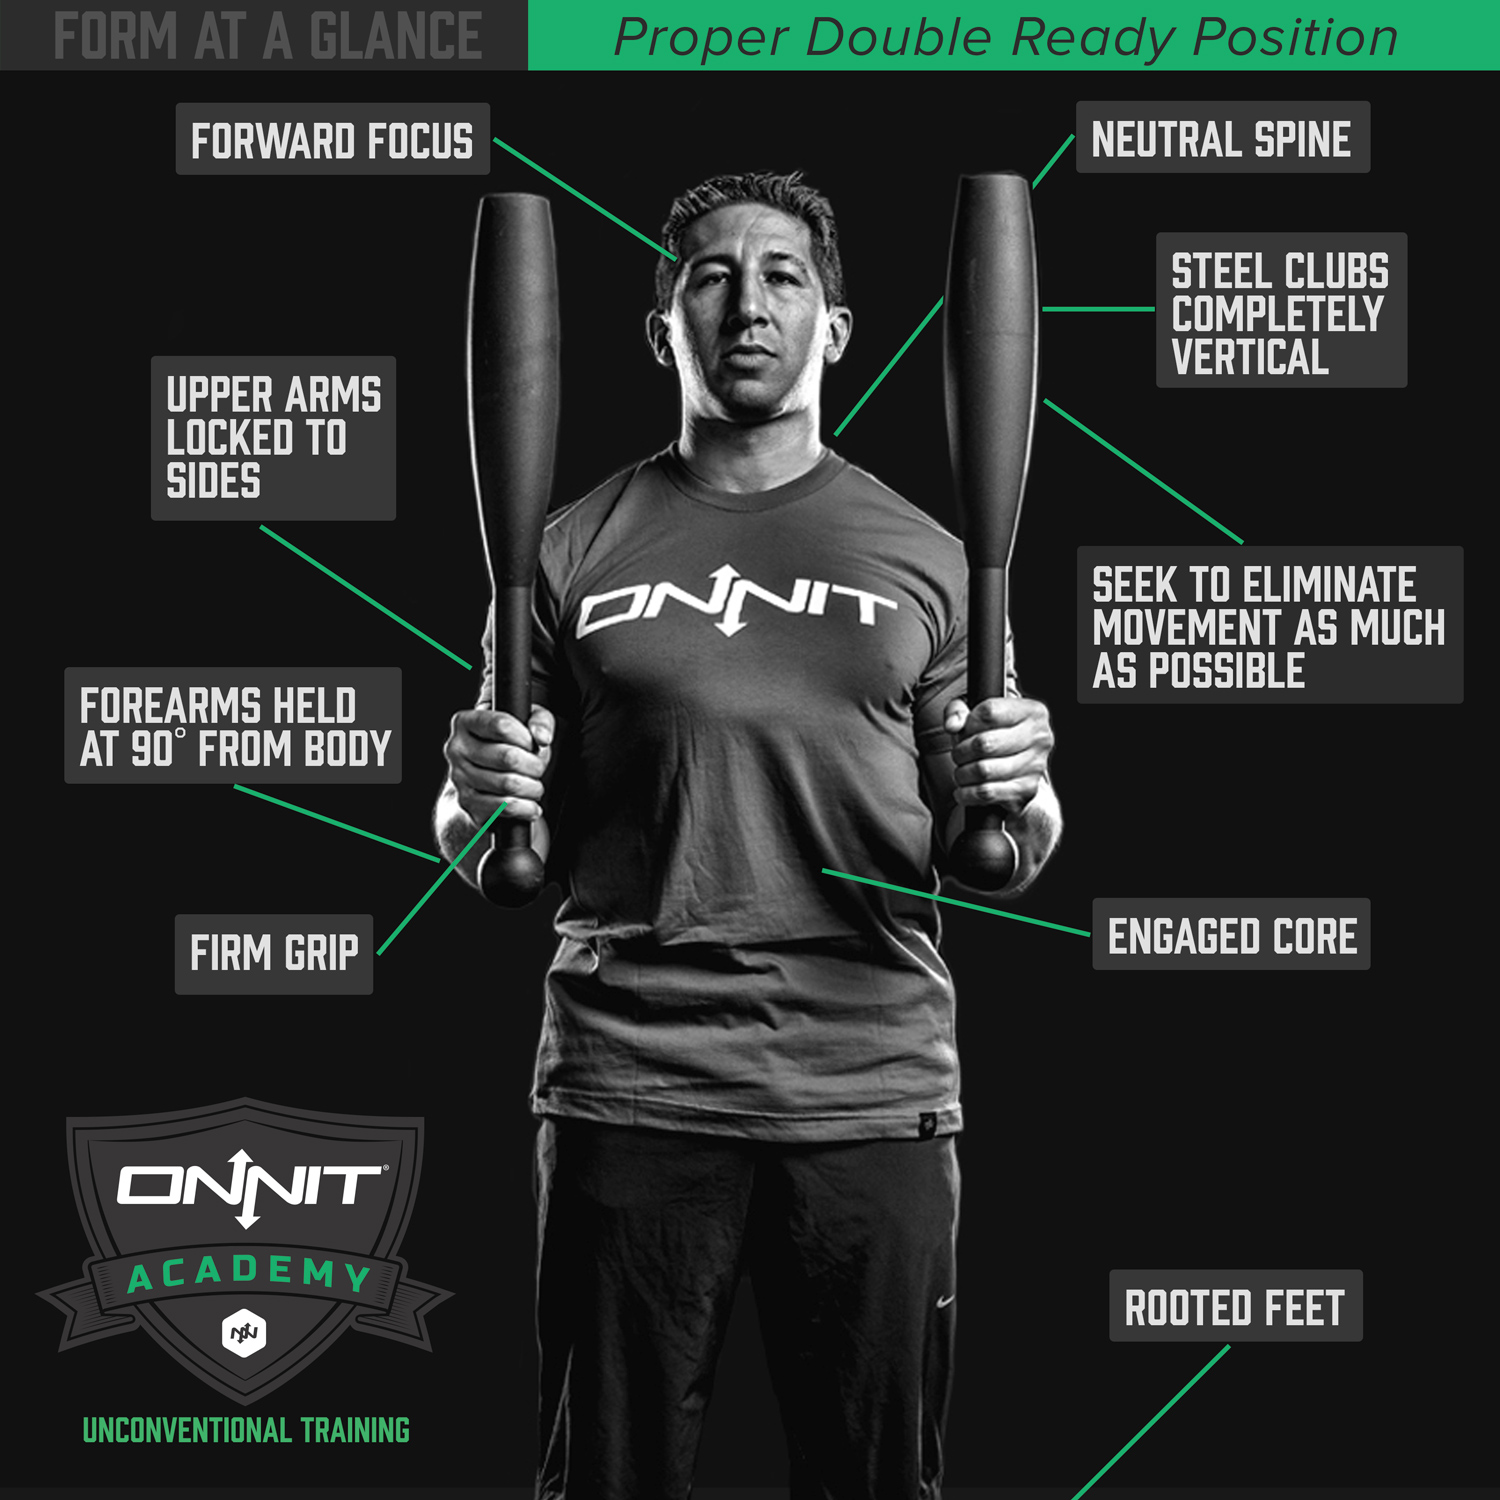 Form At A Glance Kettlebell Windmill: Form At A Glance: Steel Club Double Ready Position